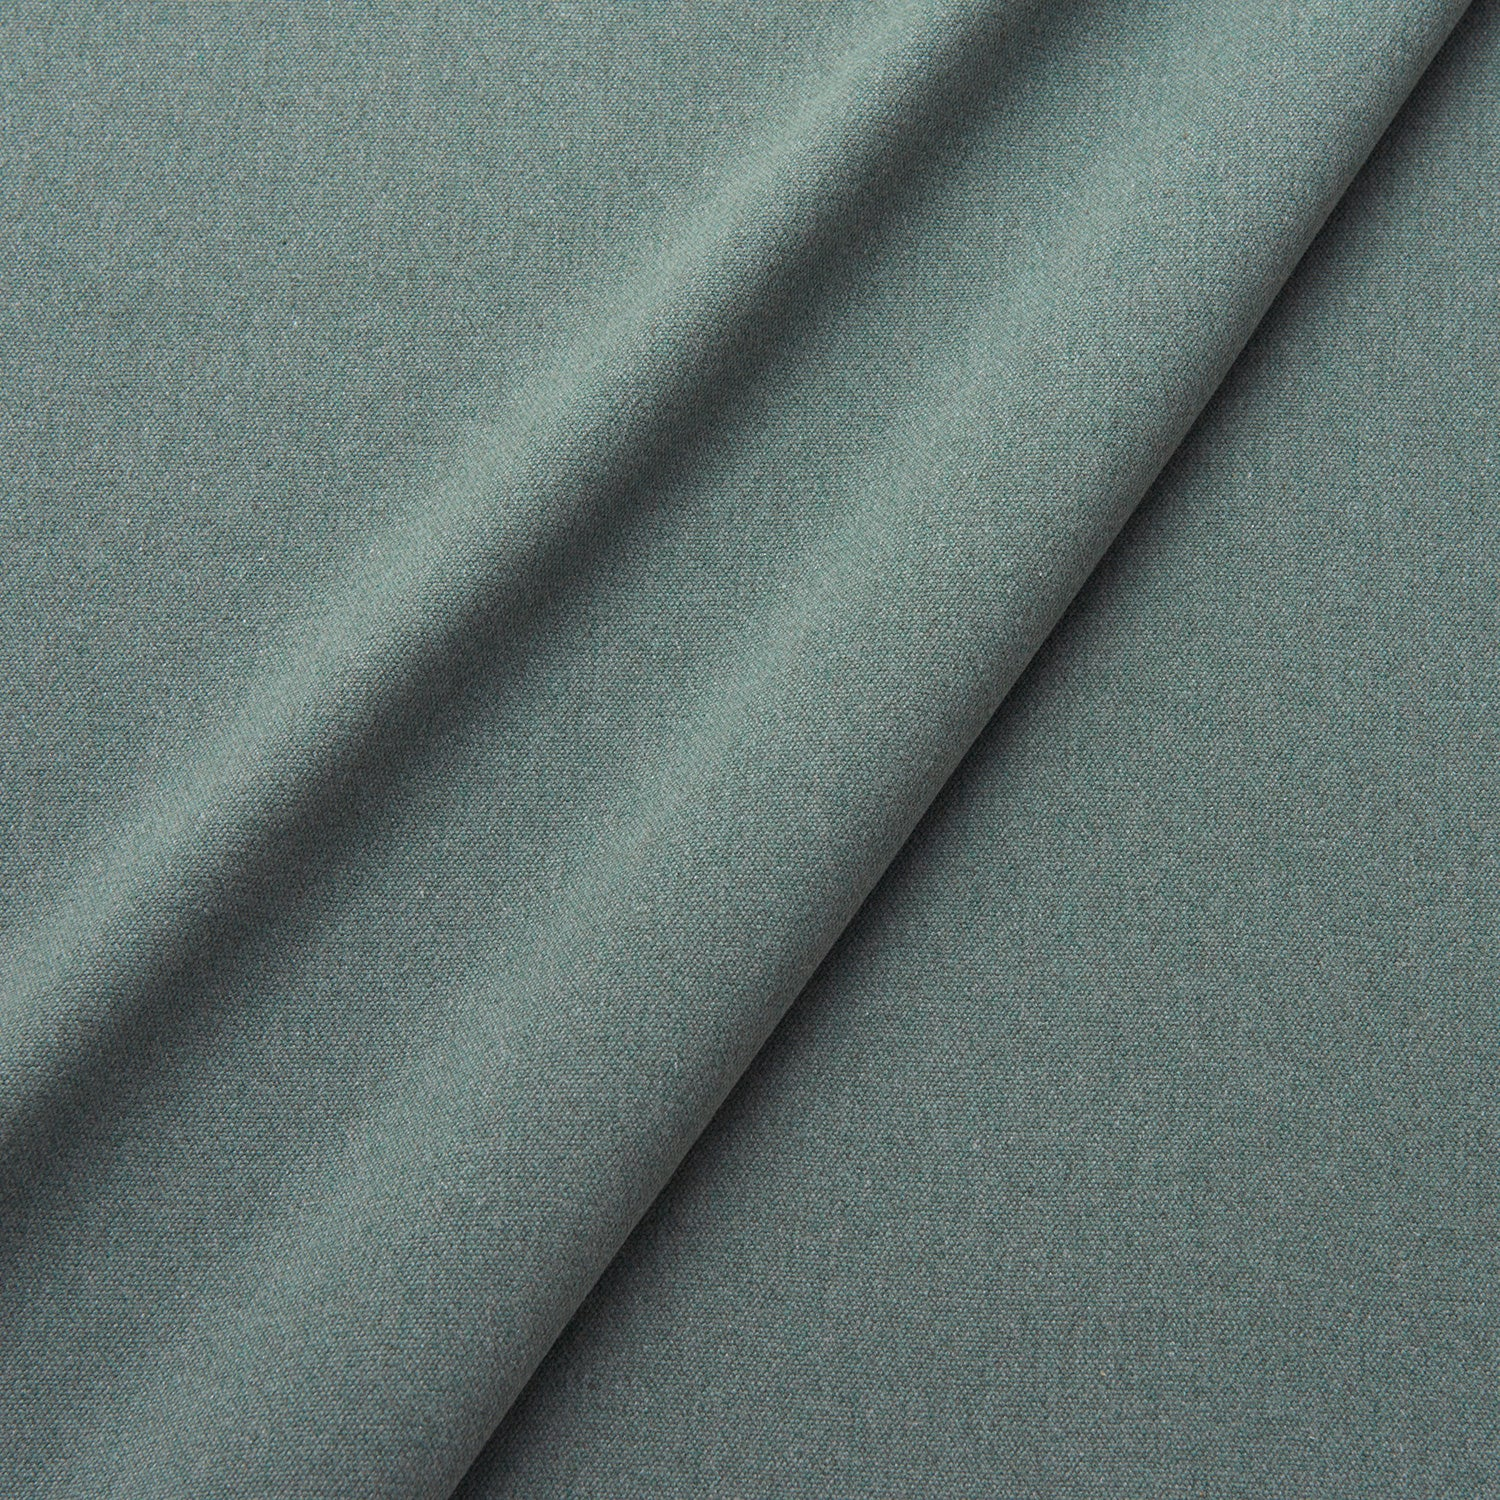 Fabric swatch of a eco-friendly plain grey fabric for curtains and upholstery